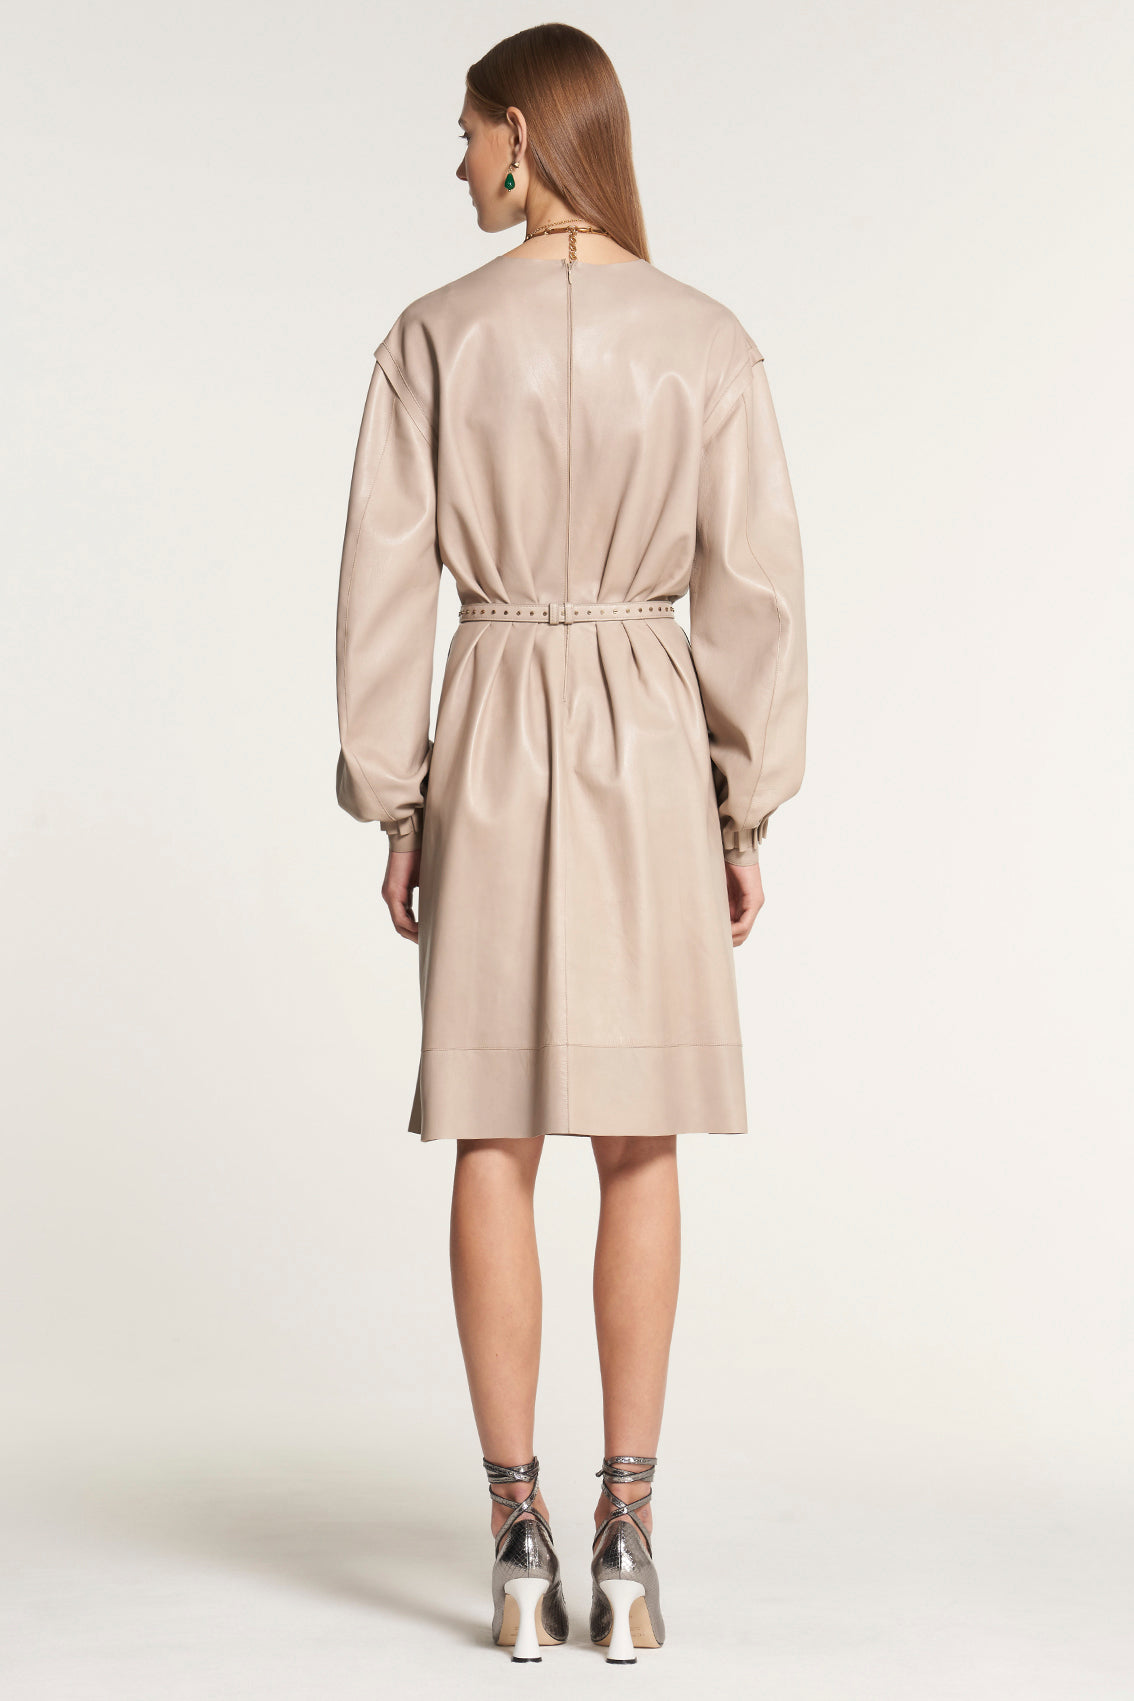 Taupe Leather Dress with Balloon Sleeves